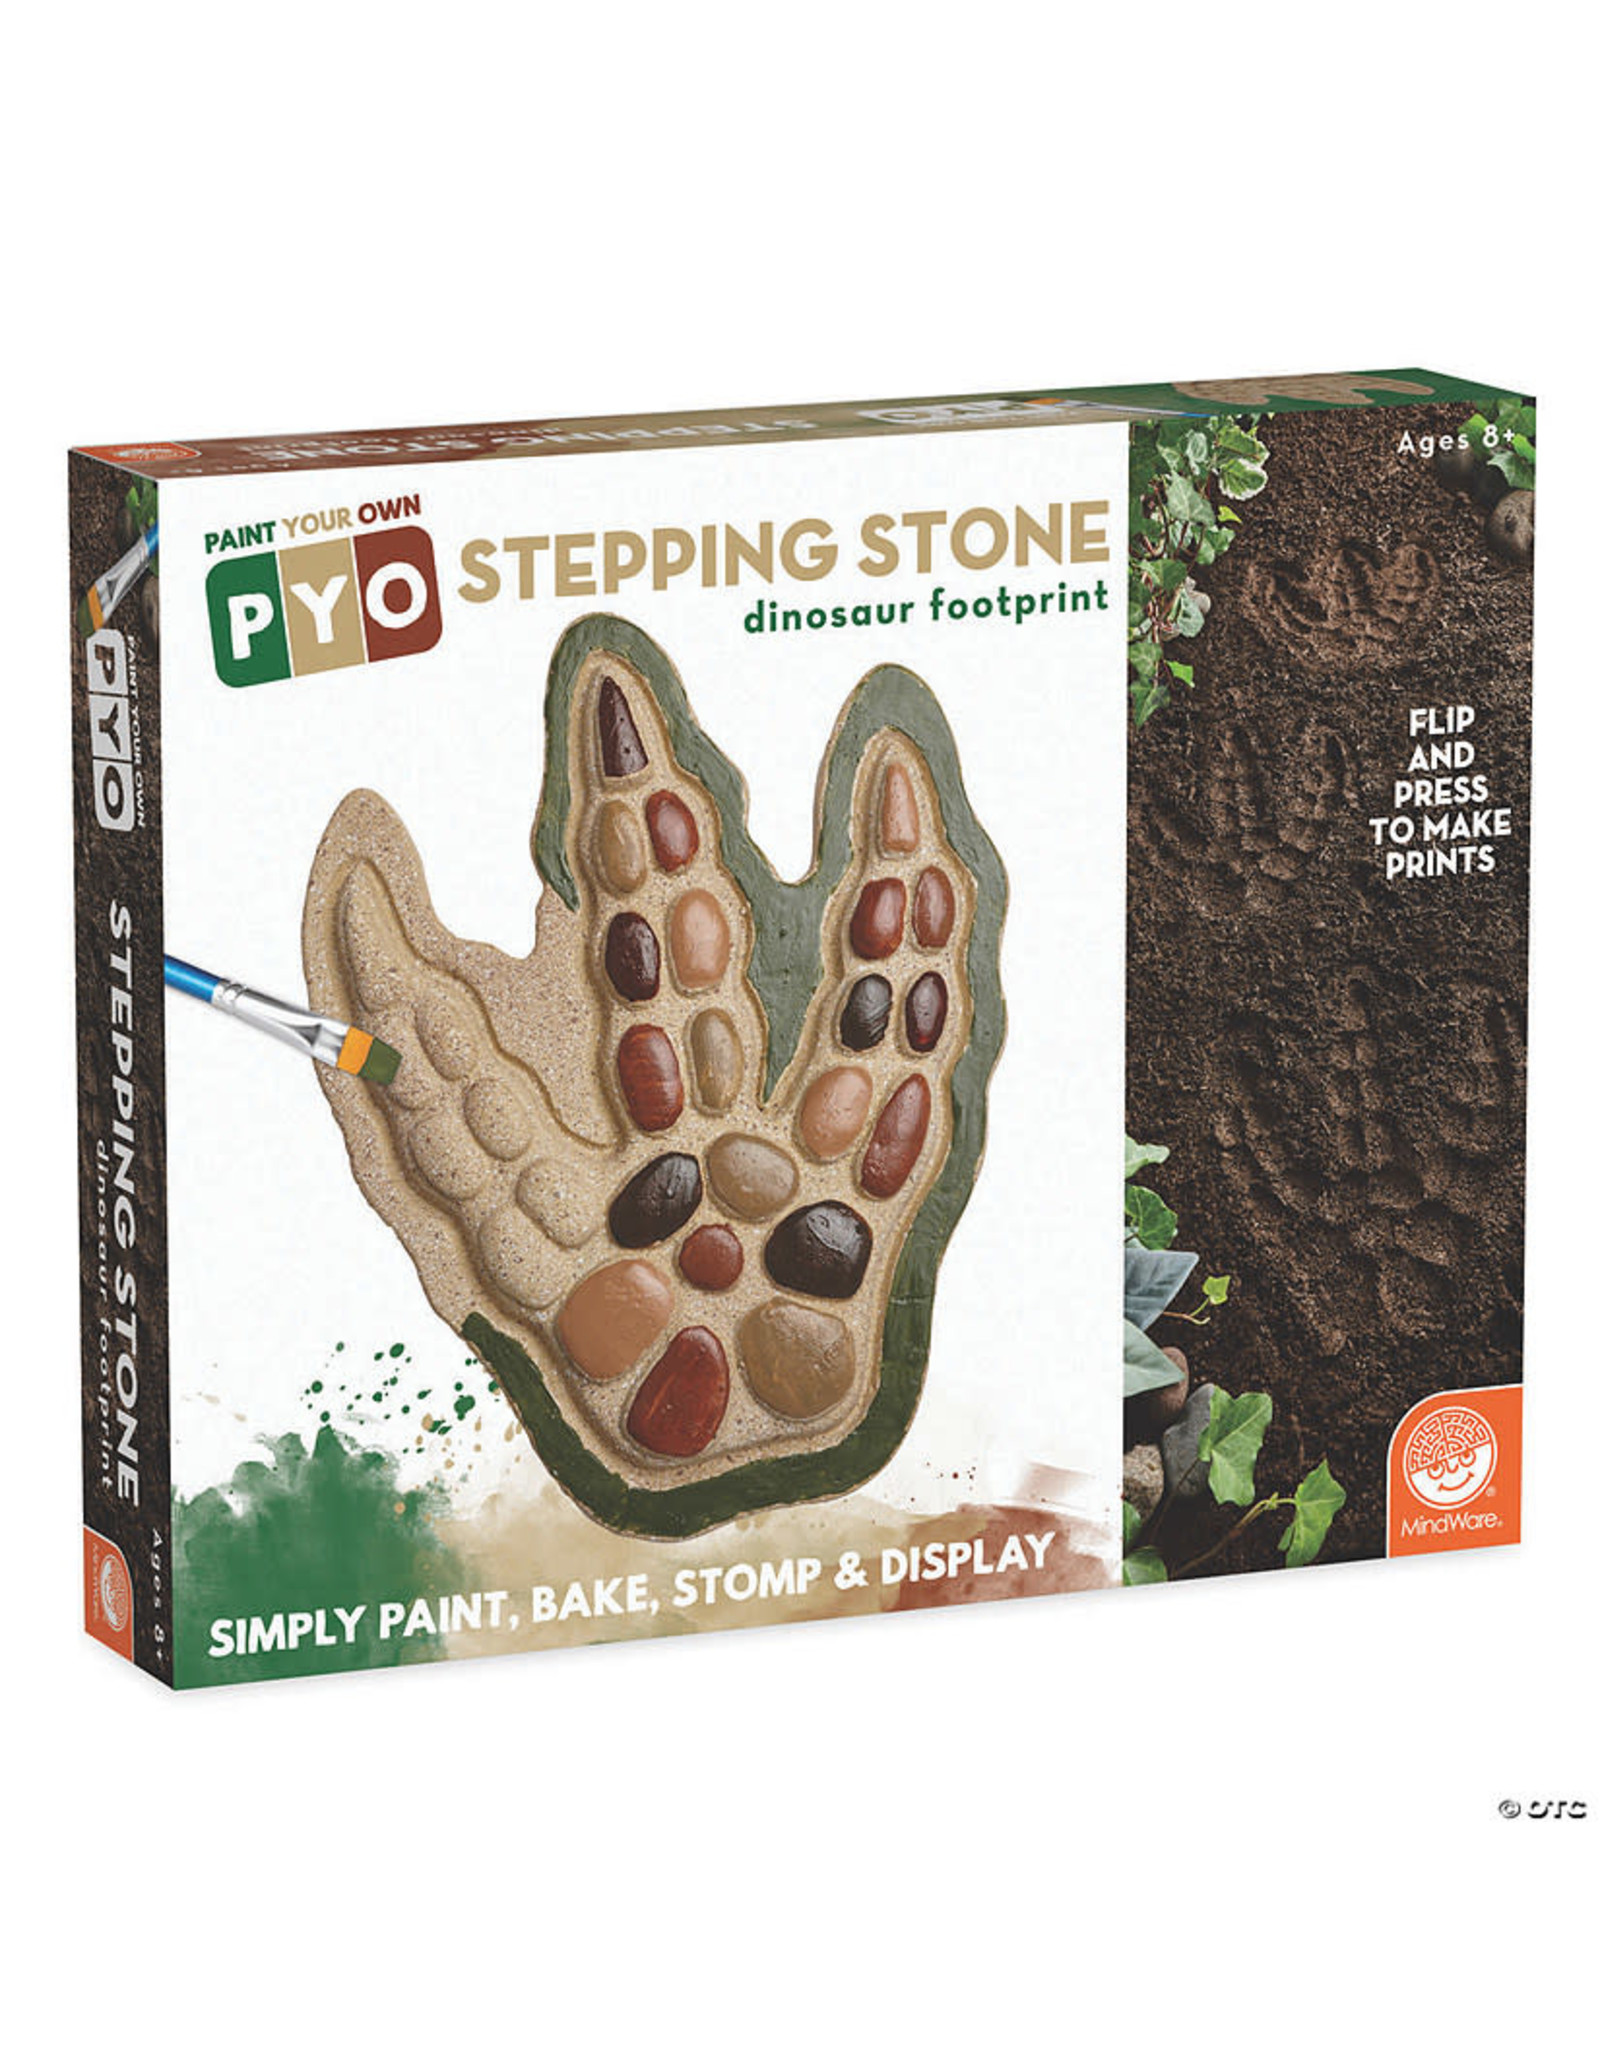 Paint-Your-Own Stepping Stone: Dinosaur